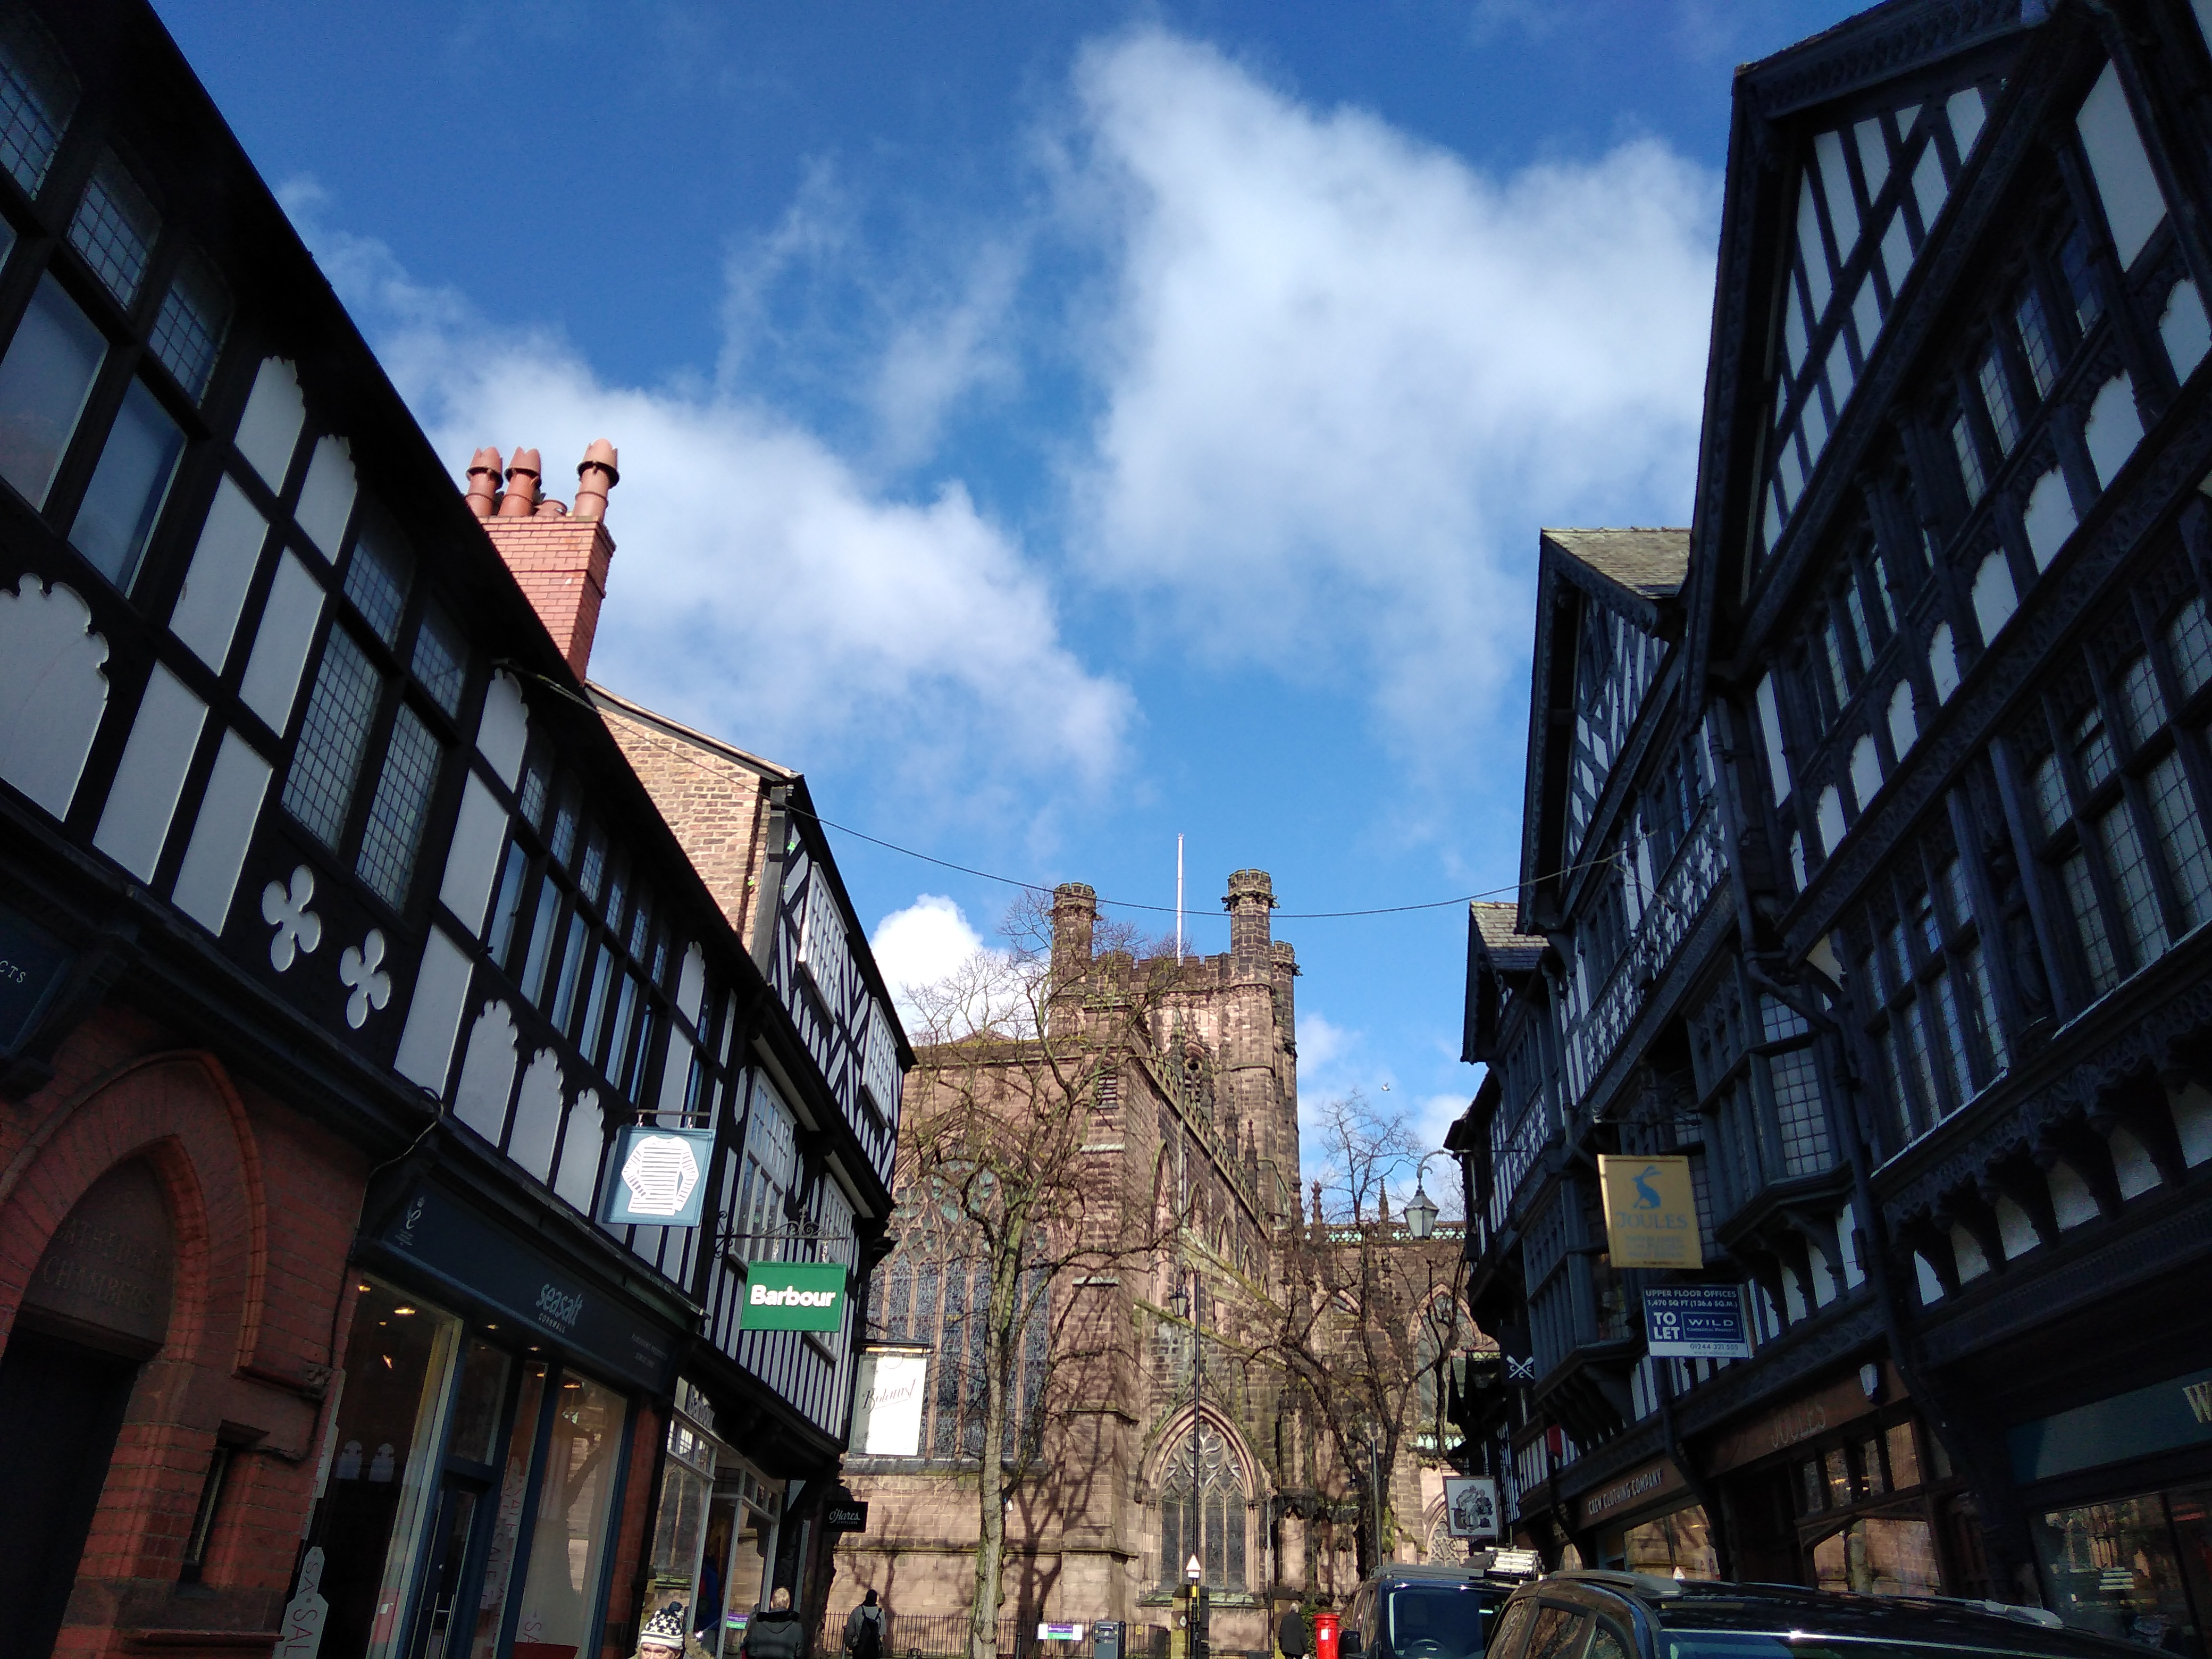 chester cathedral, explore chester, walled cities, roman cities, explore england, historic england, black and white architecture,